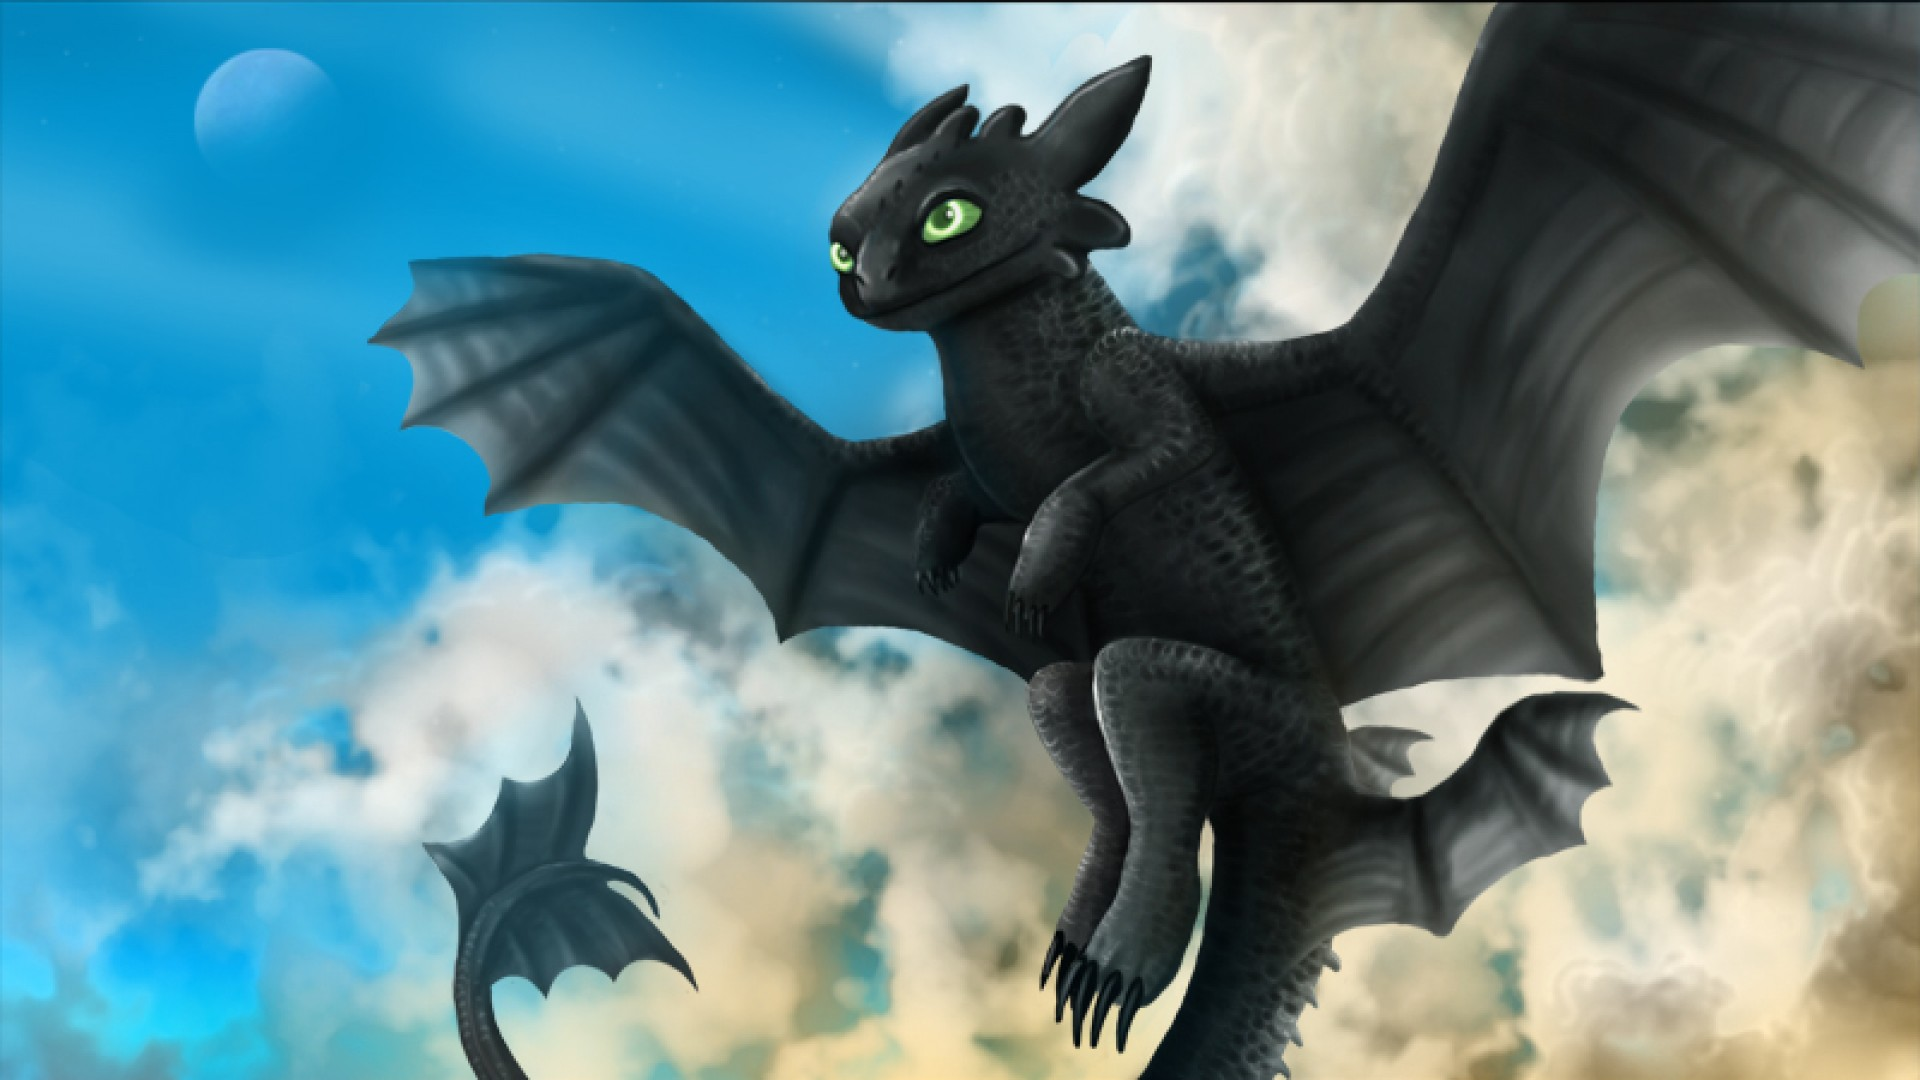 Toothless   Wallpaper High Definition High Quality Widescreen 1920x1080